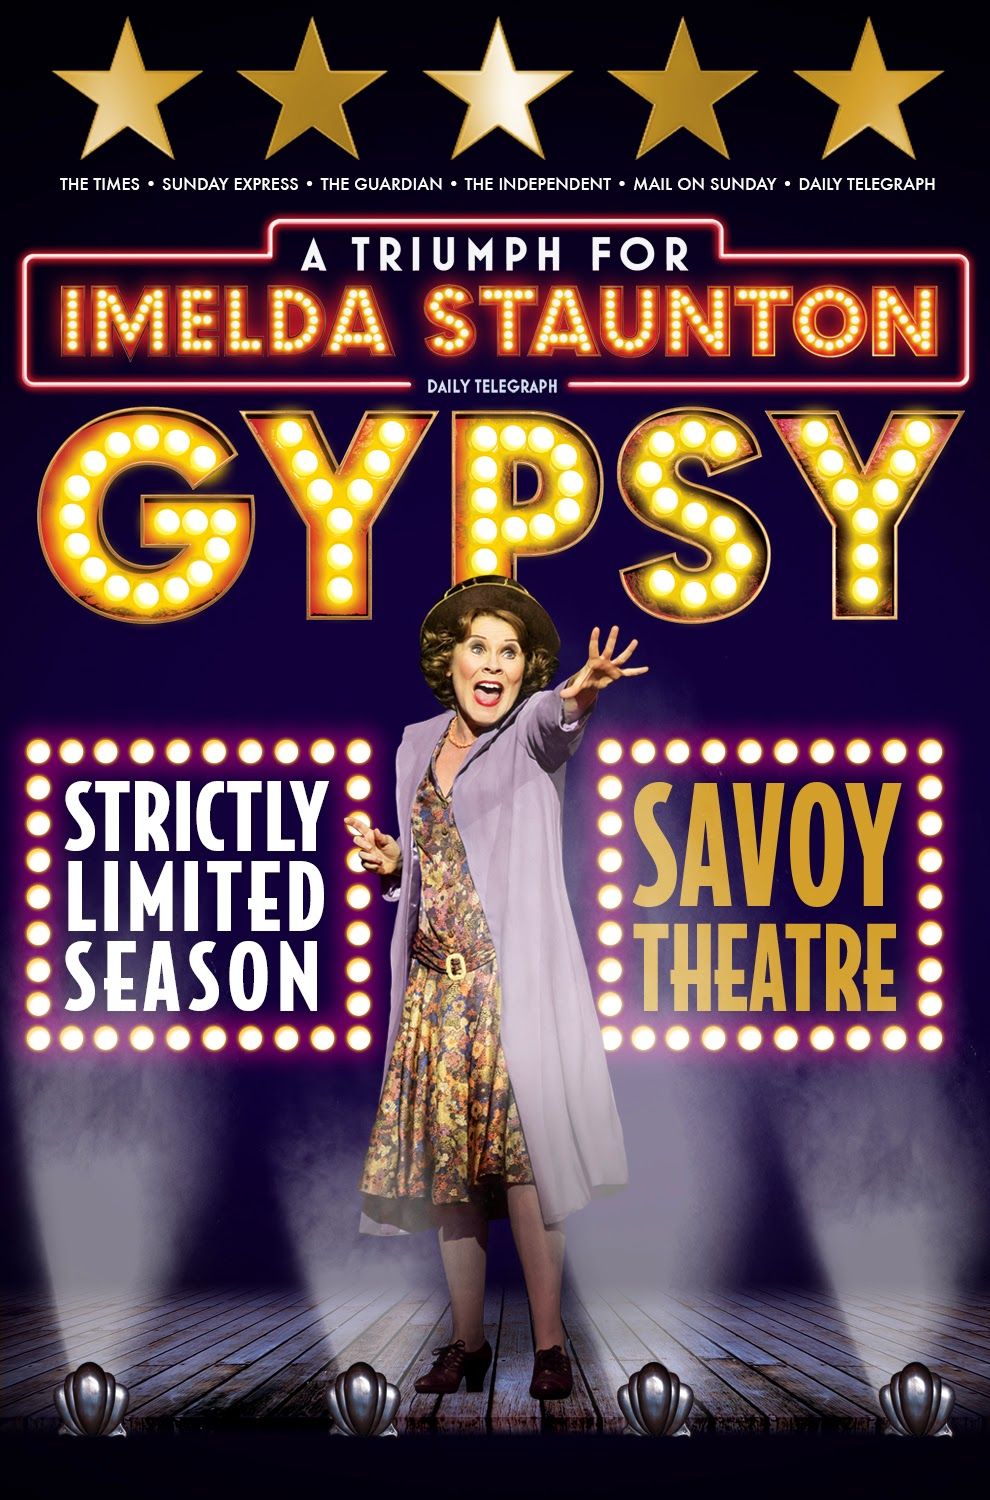 Gypsy The Savoy Theatre